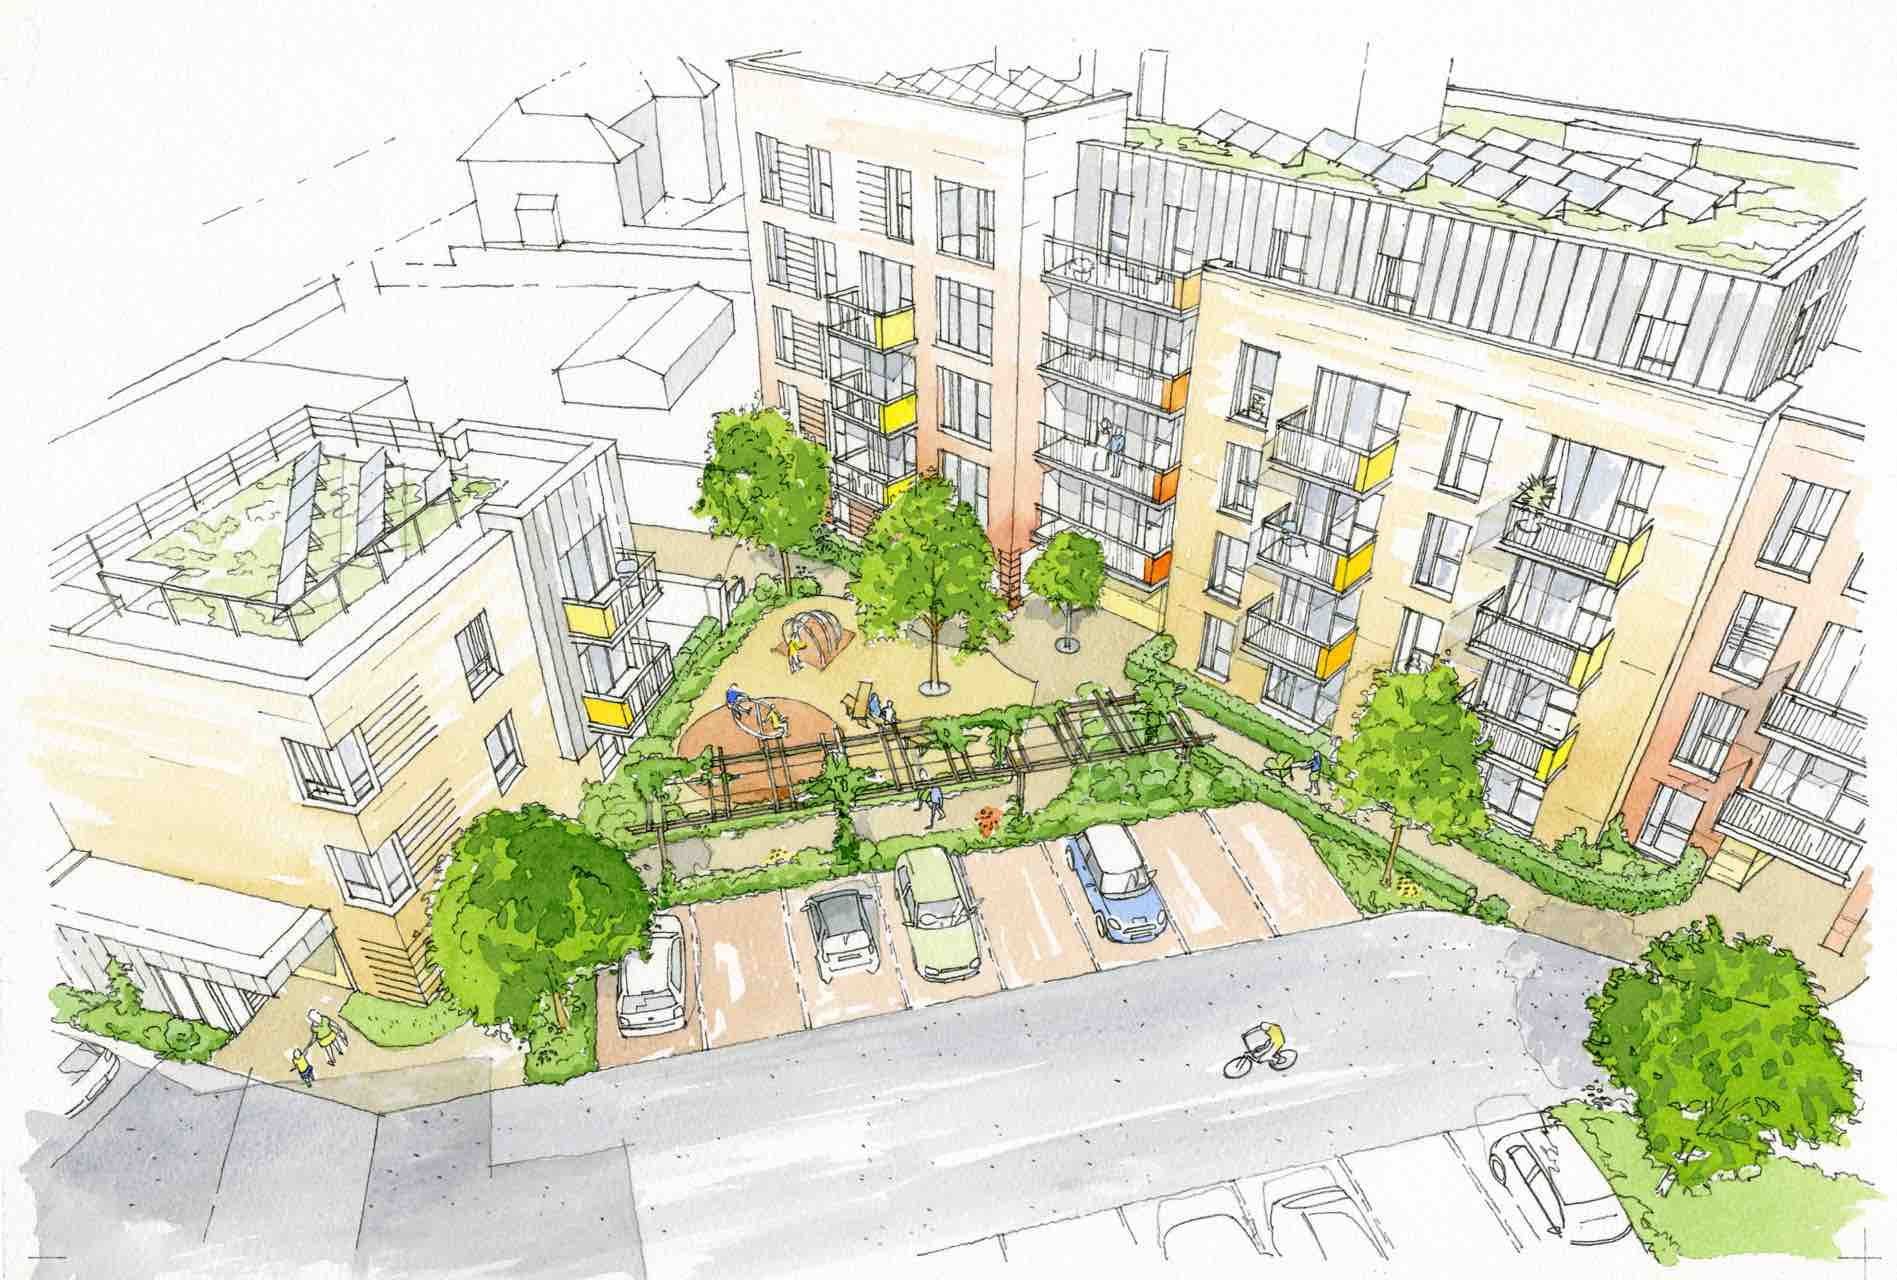 Planning permission for Urban Living in South Bristol